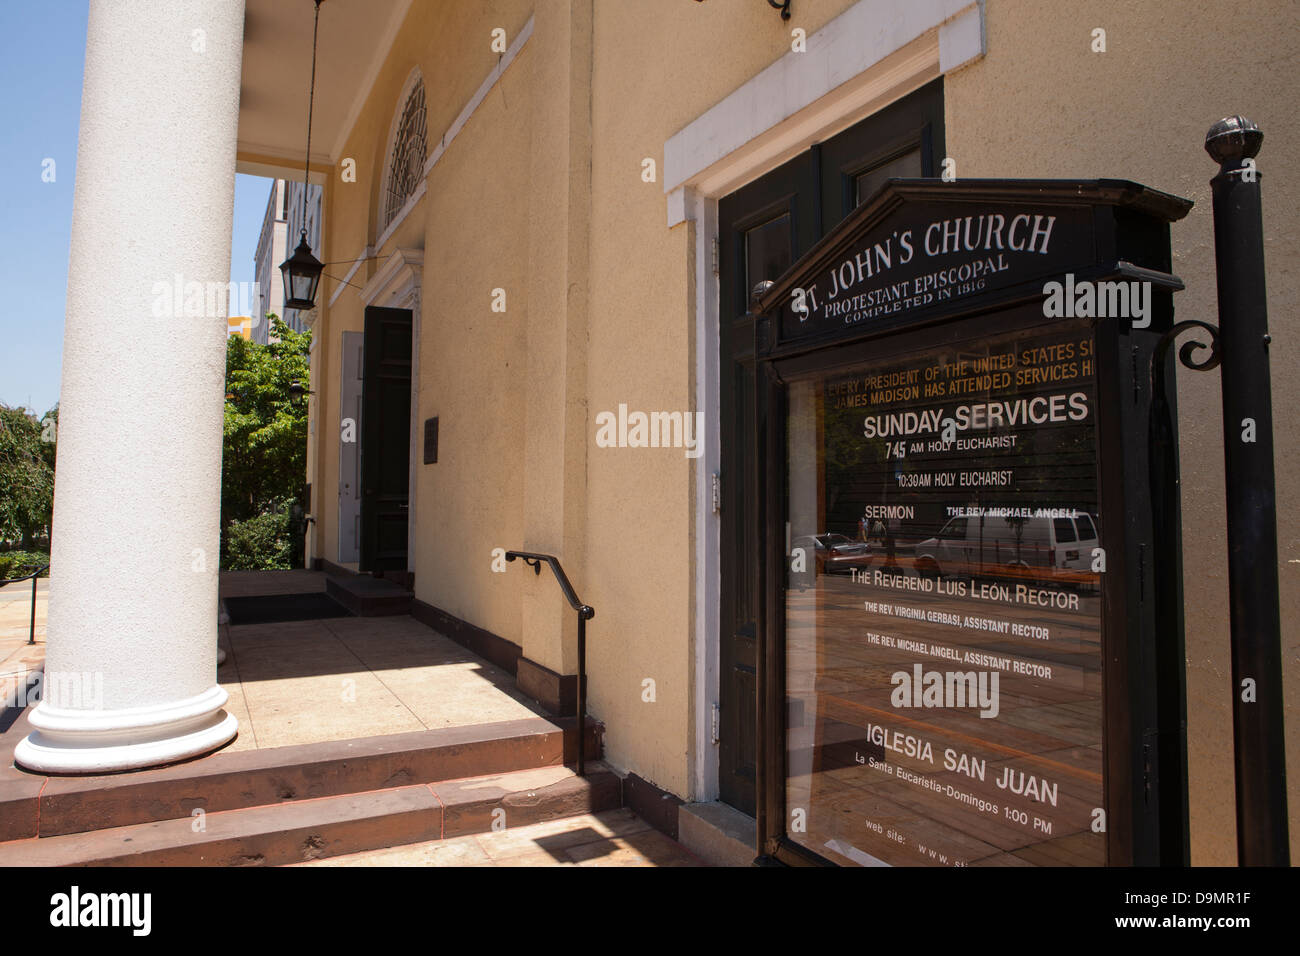 St. John's Protestant Episcopal Church, Washington DC - Stock Image